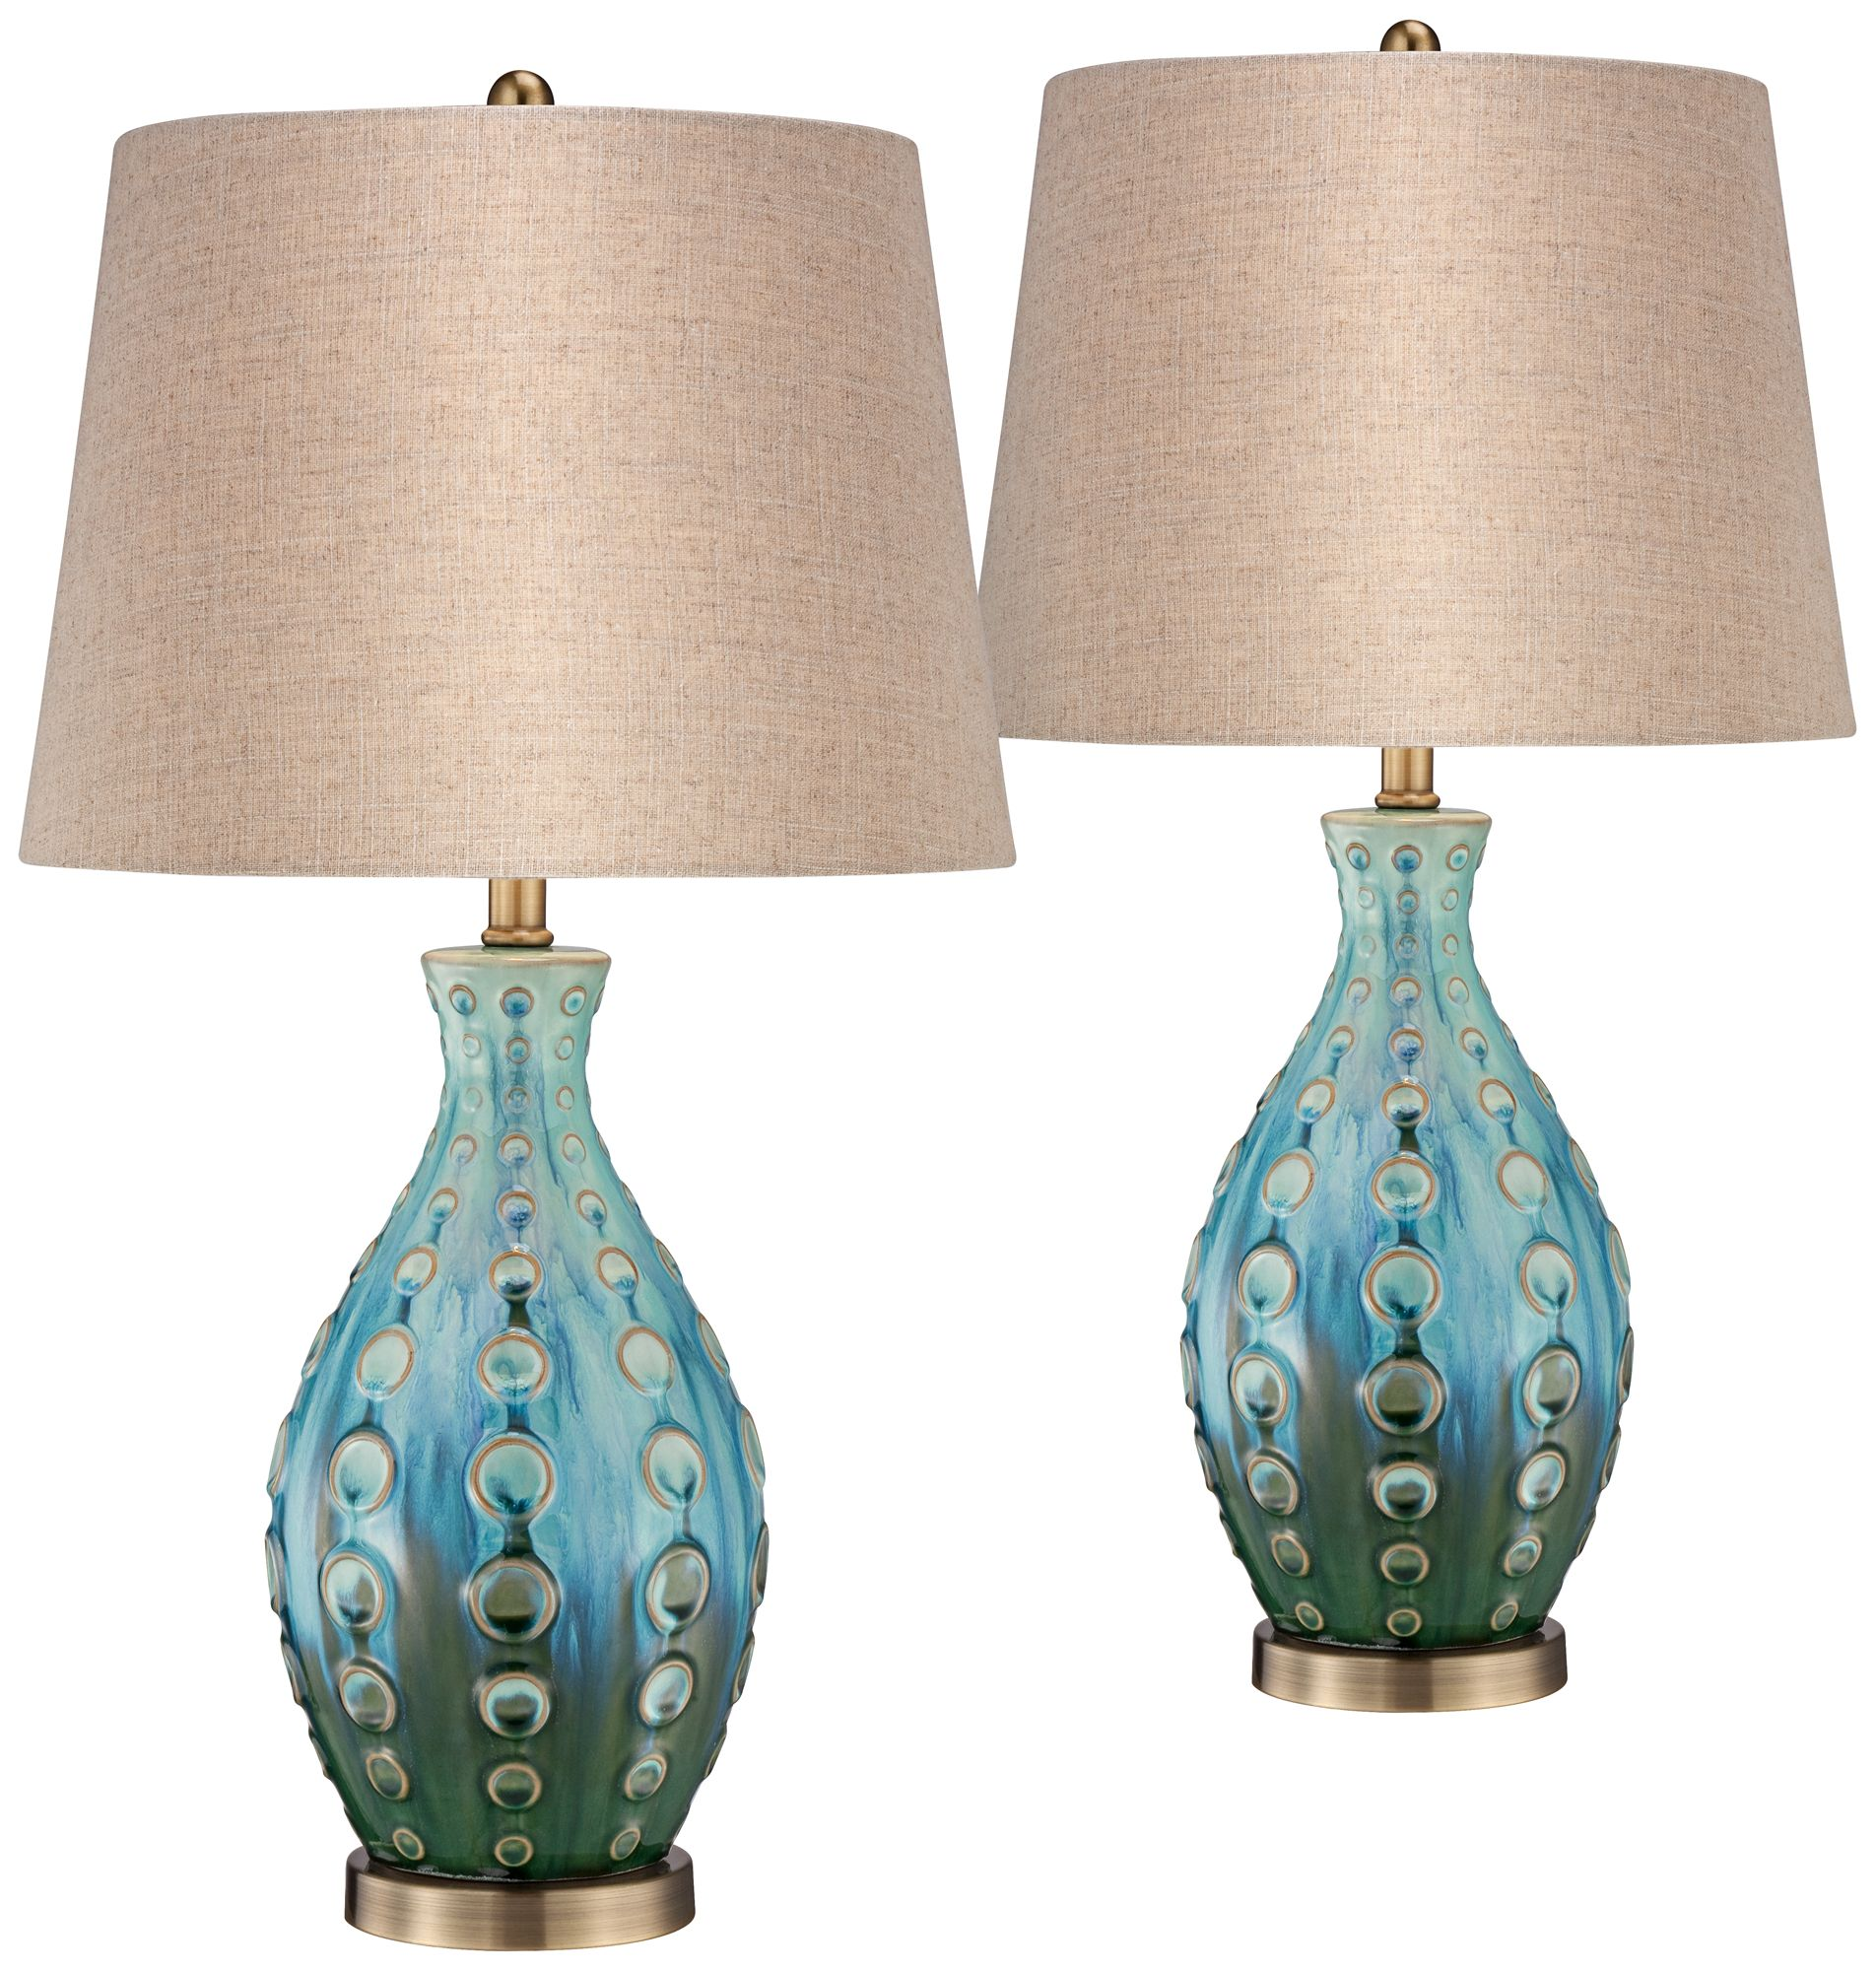 Details About Mid Century Modern Table Lamps Set Of 2 Ceramic Teal For Living Room Bedroom